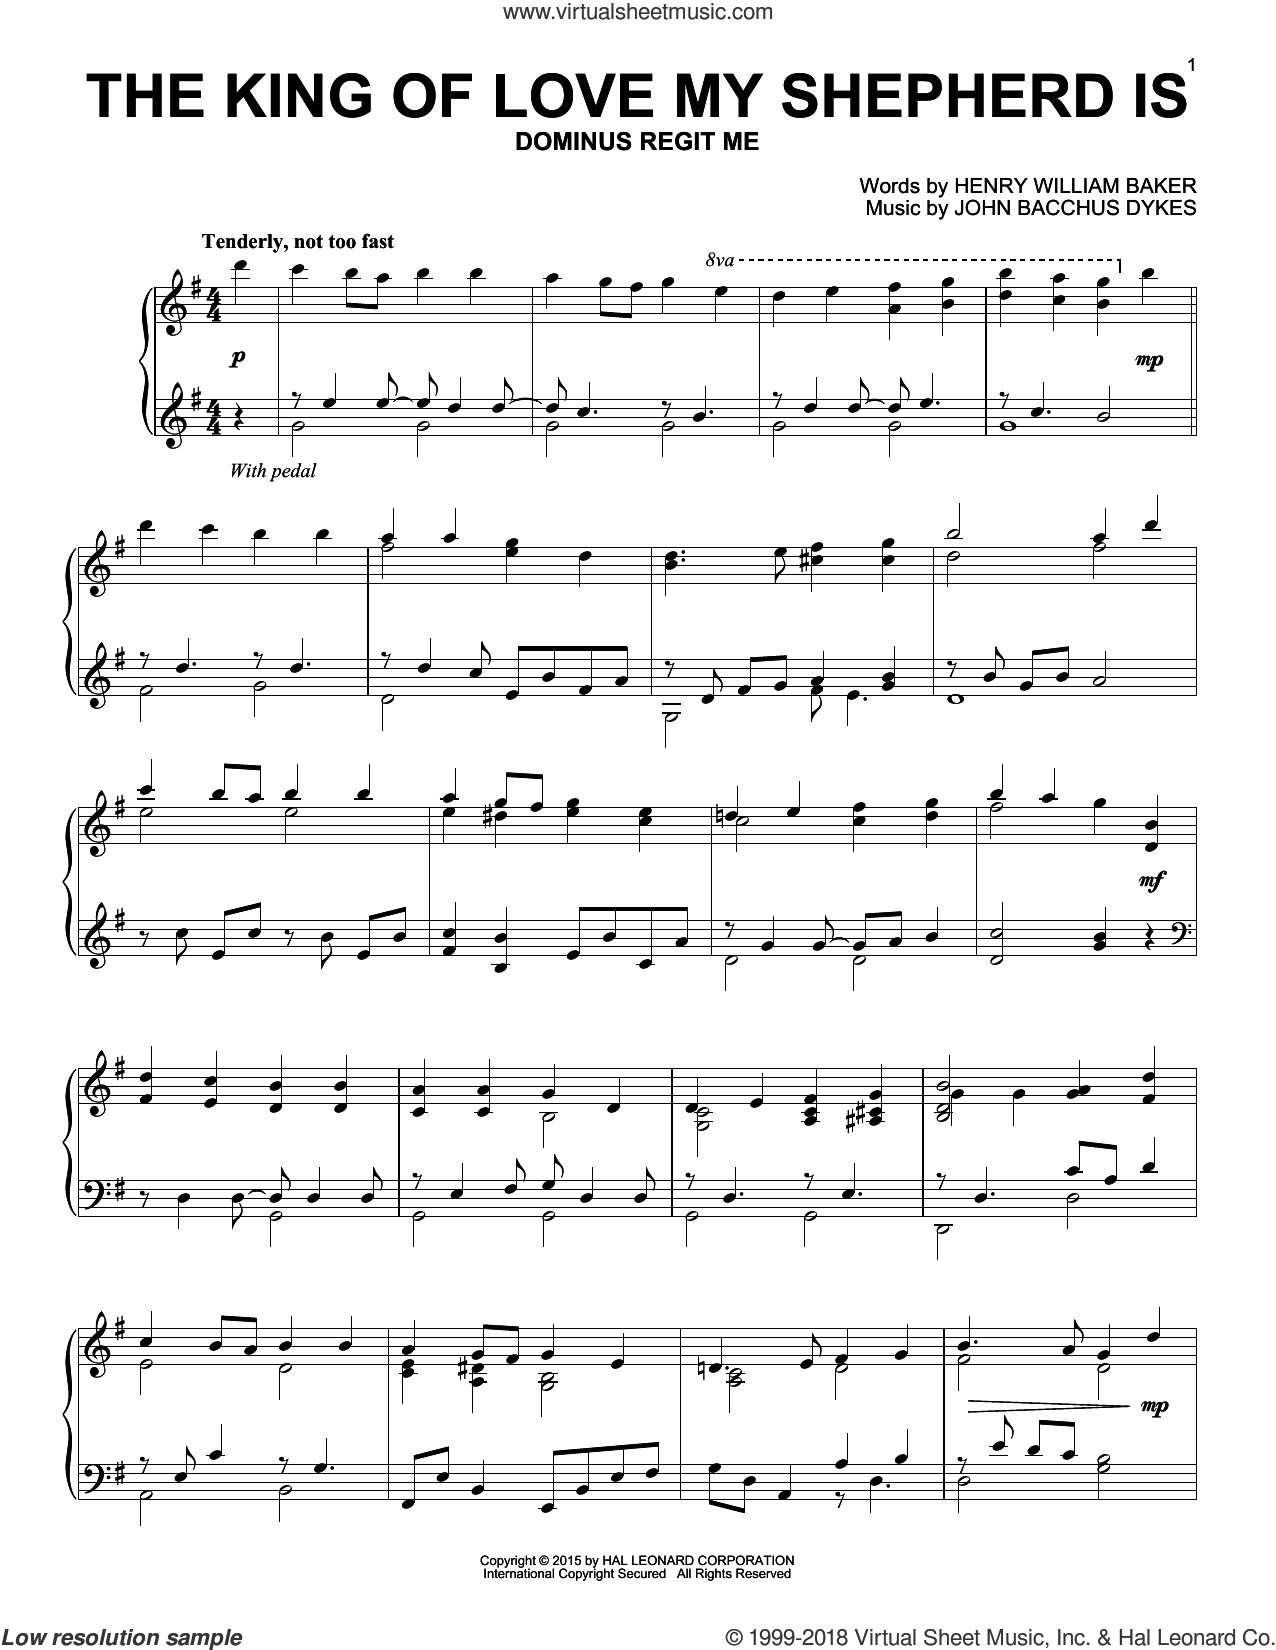 The King Of Love My Shepherd Is sheet music for piano solo by Henry Williams Baker and Miscellaneous. Score Image Preview.